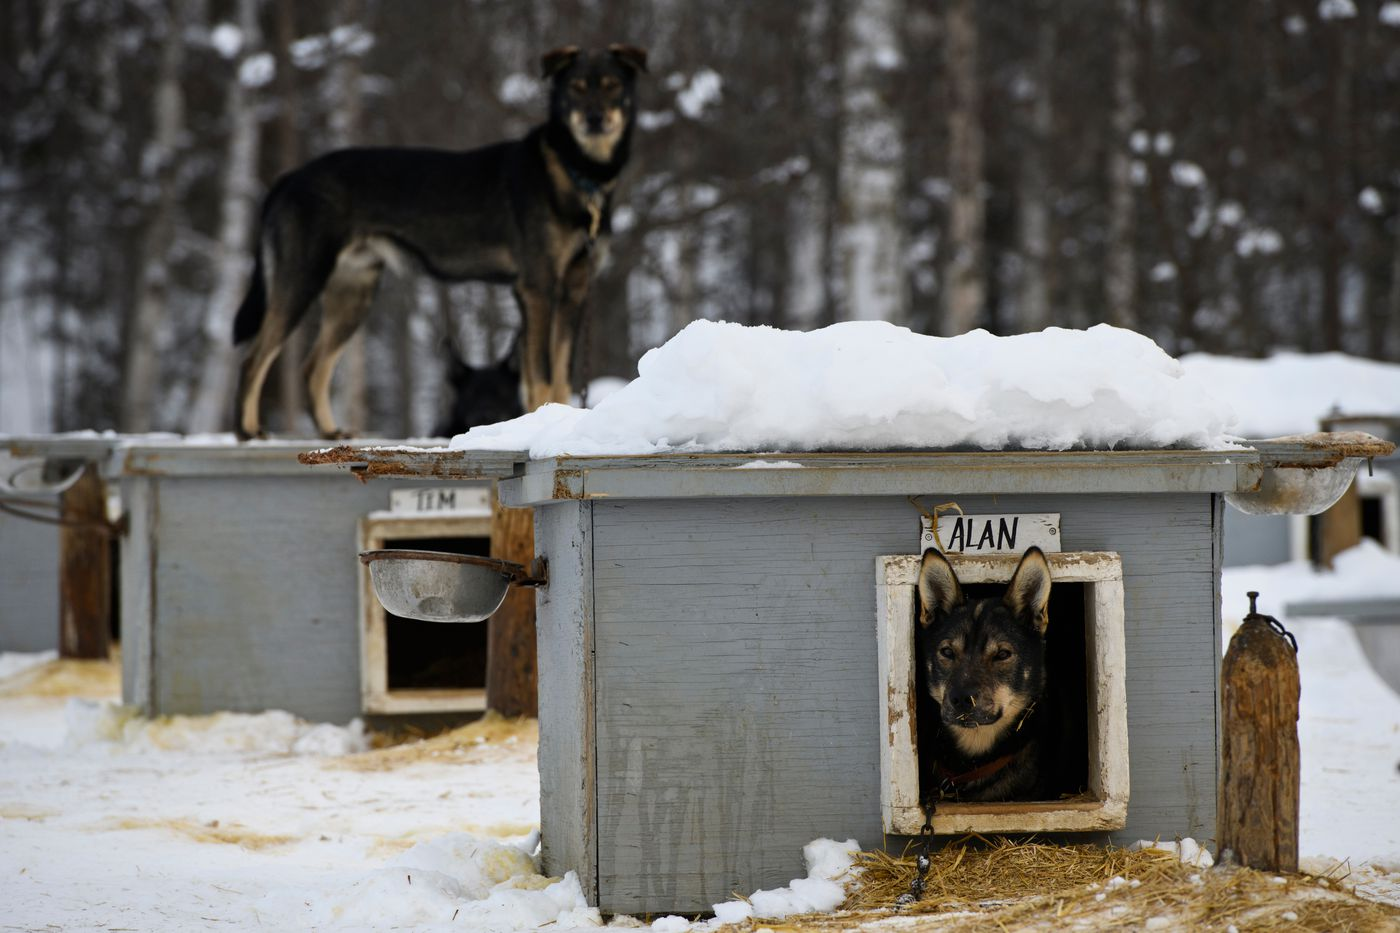 Tim, left, and Alan are two of about 80 dogs at Martin Buser's Big Lake kennel. Photographed on February 25, 2020. (Marc Lester / ADN)